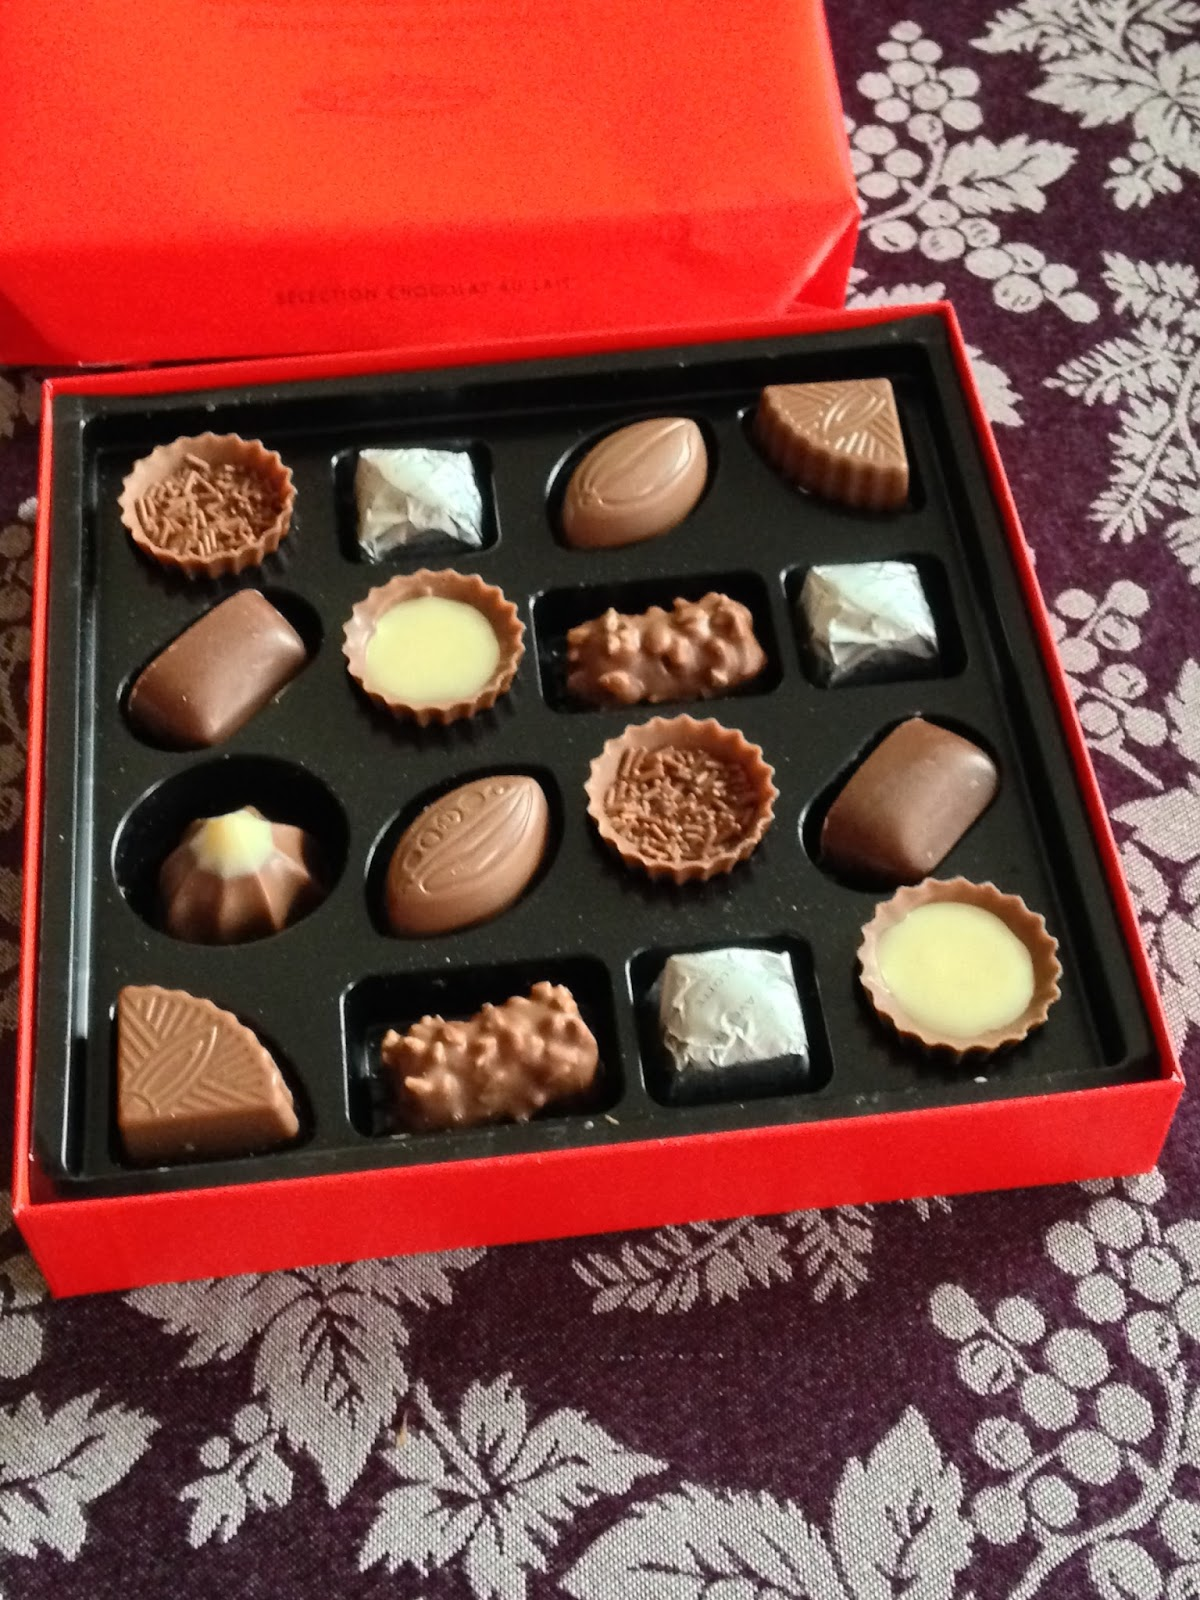 The Chocolate Cult: Gift Box of Milk Chocolate from Cailler